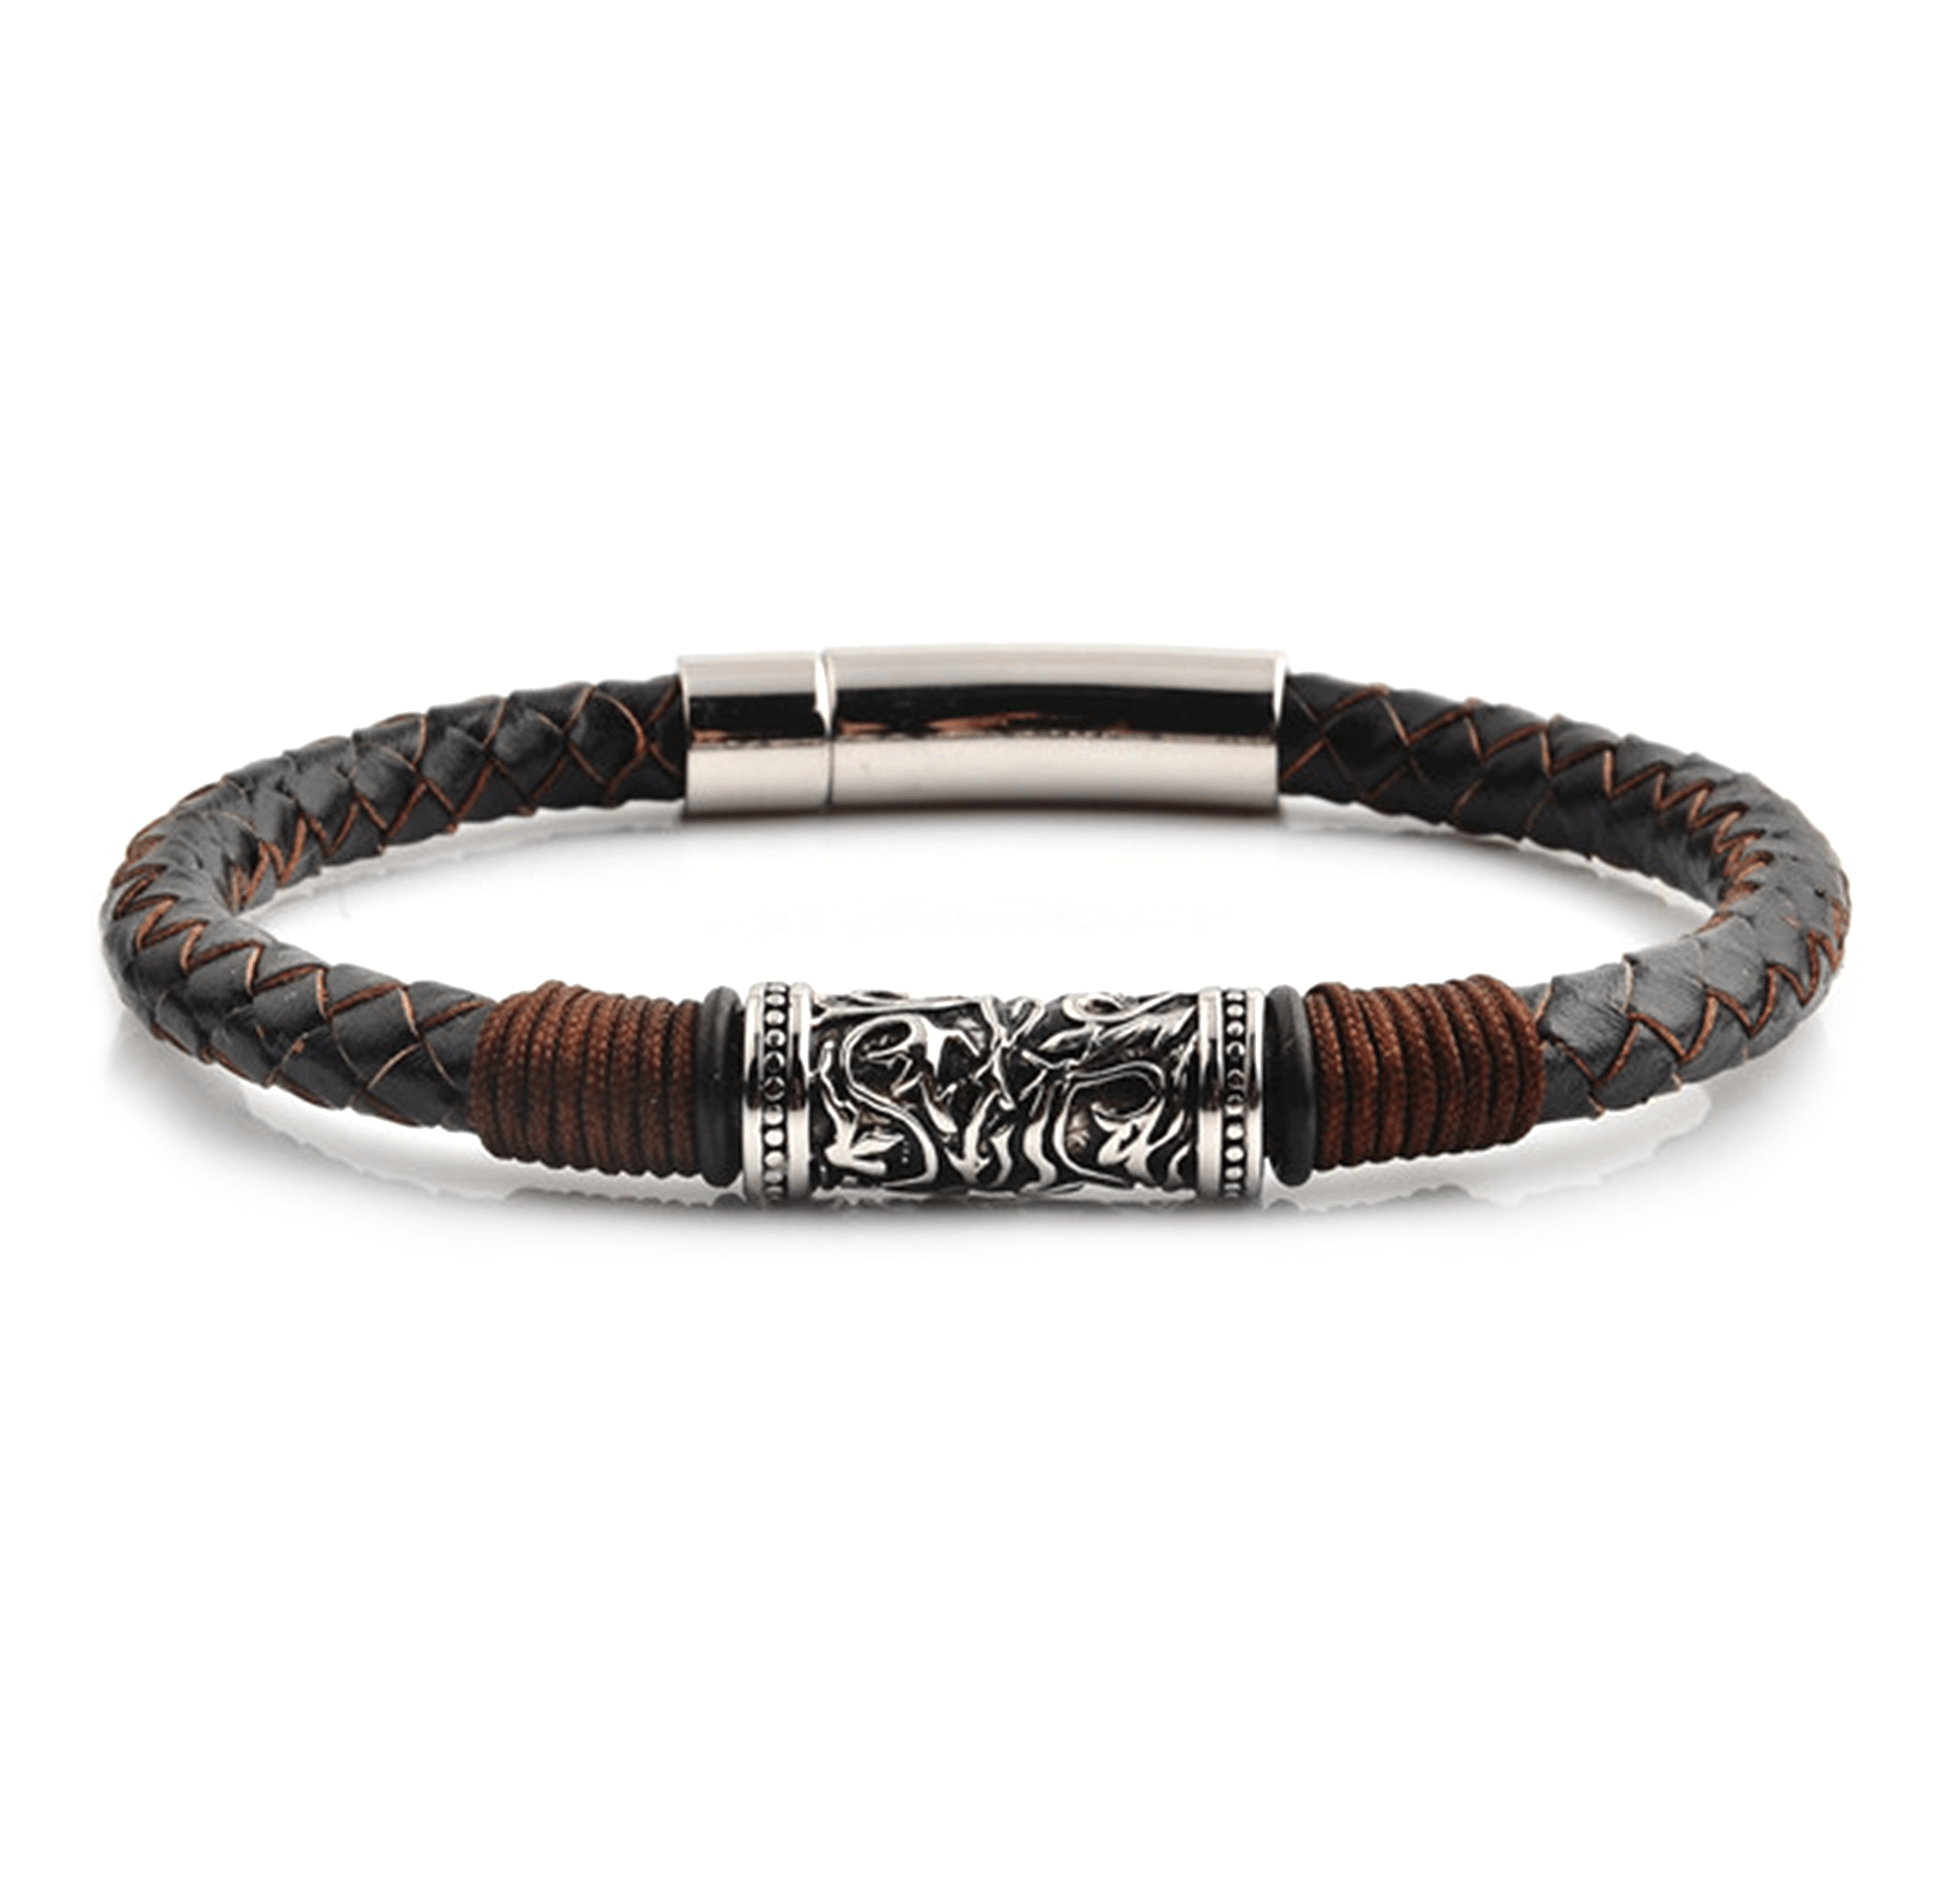 HYLIZO Nelore Series 001 - Genuine Dark Brown Leather Edition bracelet with 316 Stainless Steel Engraving